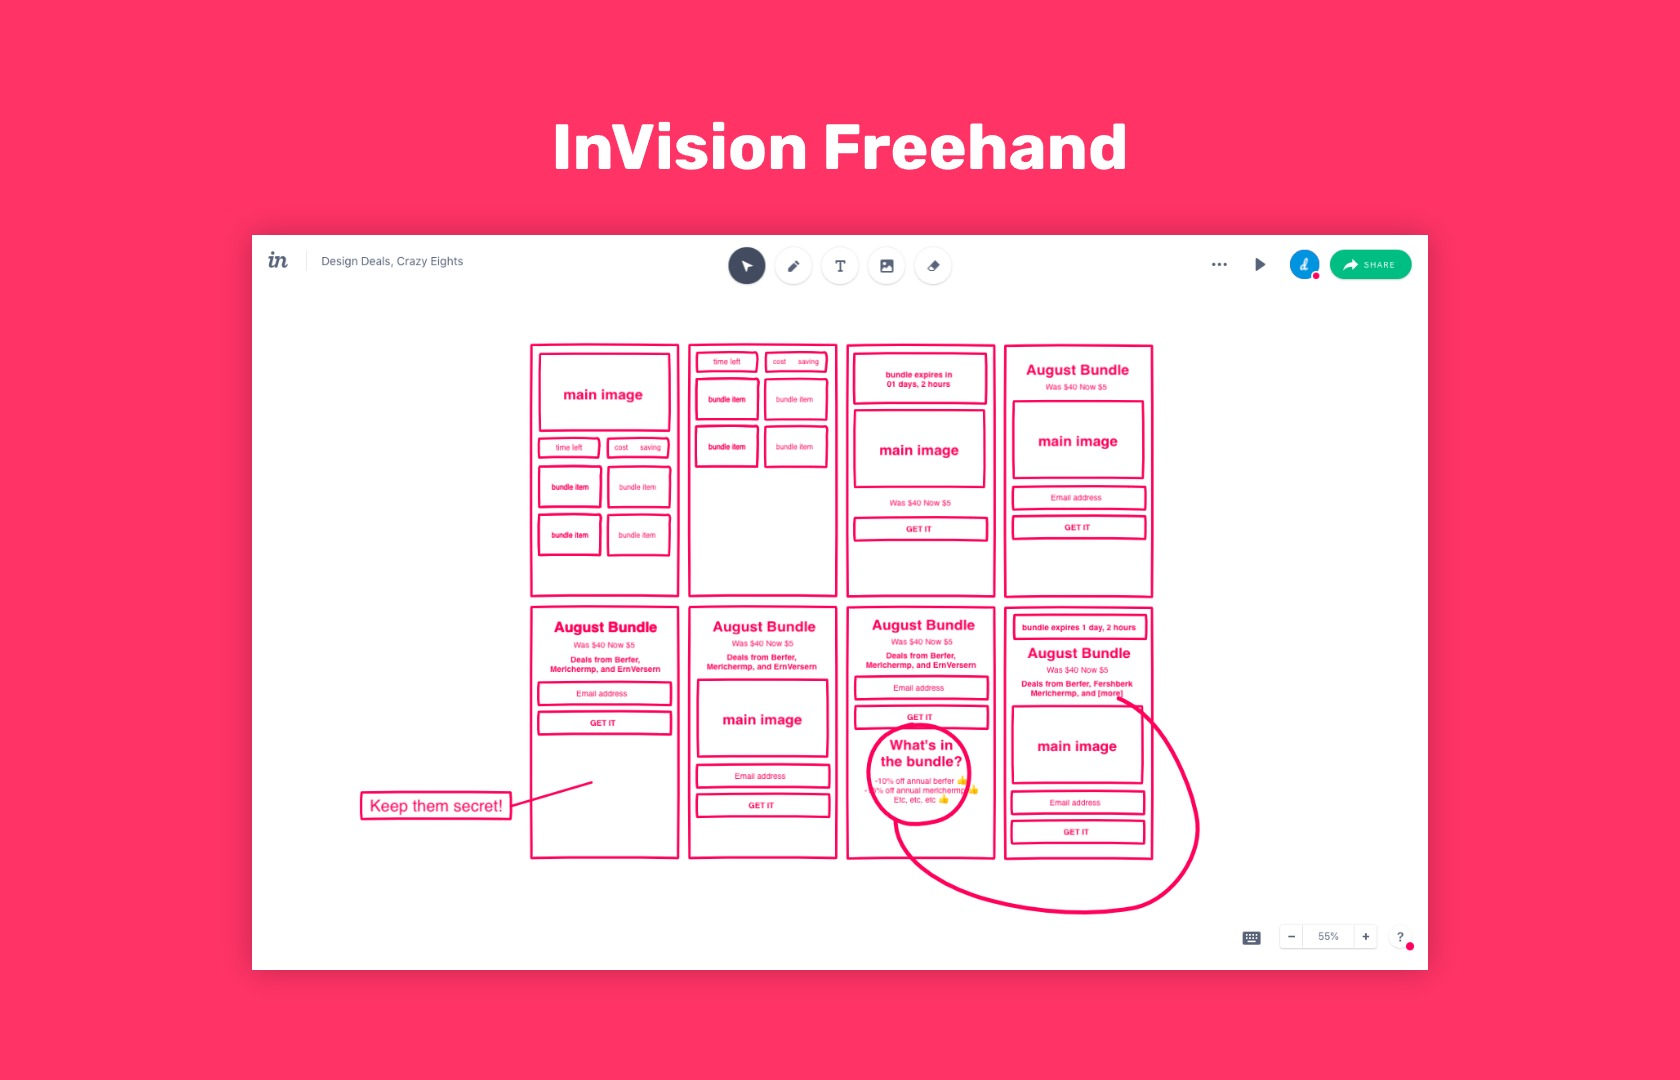 InVision Freehand, visual brainstorming tool